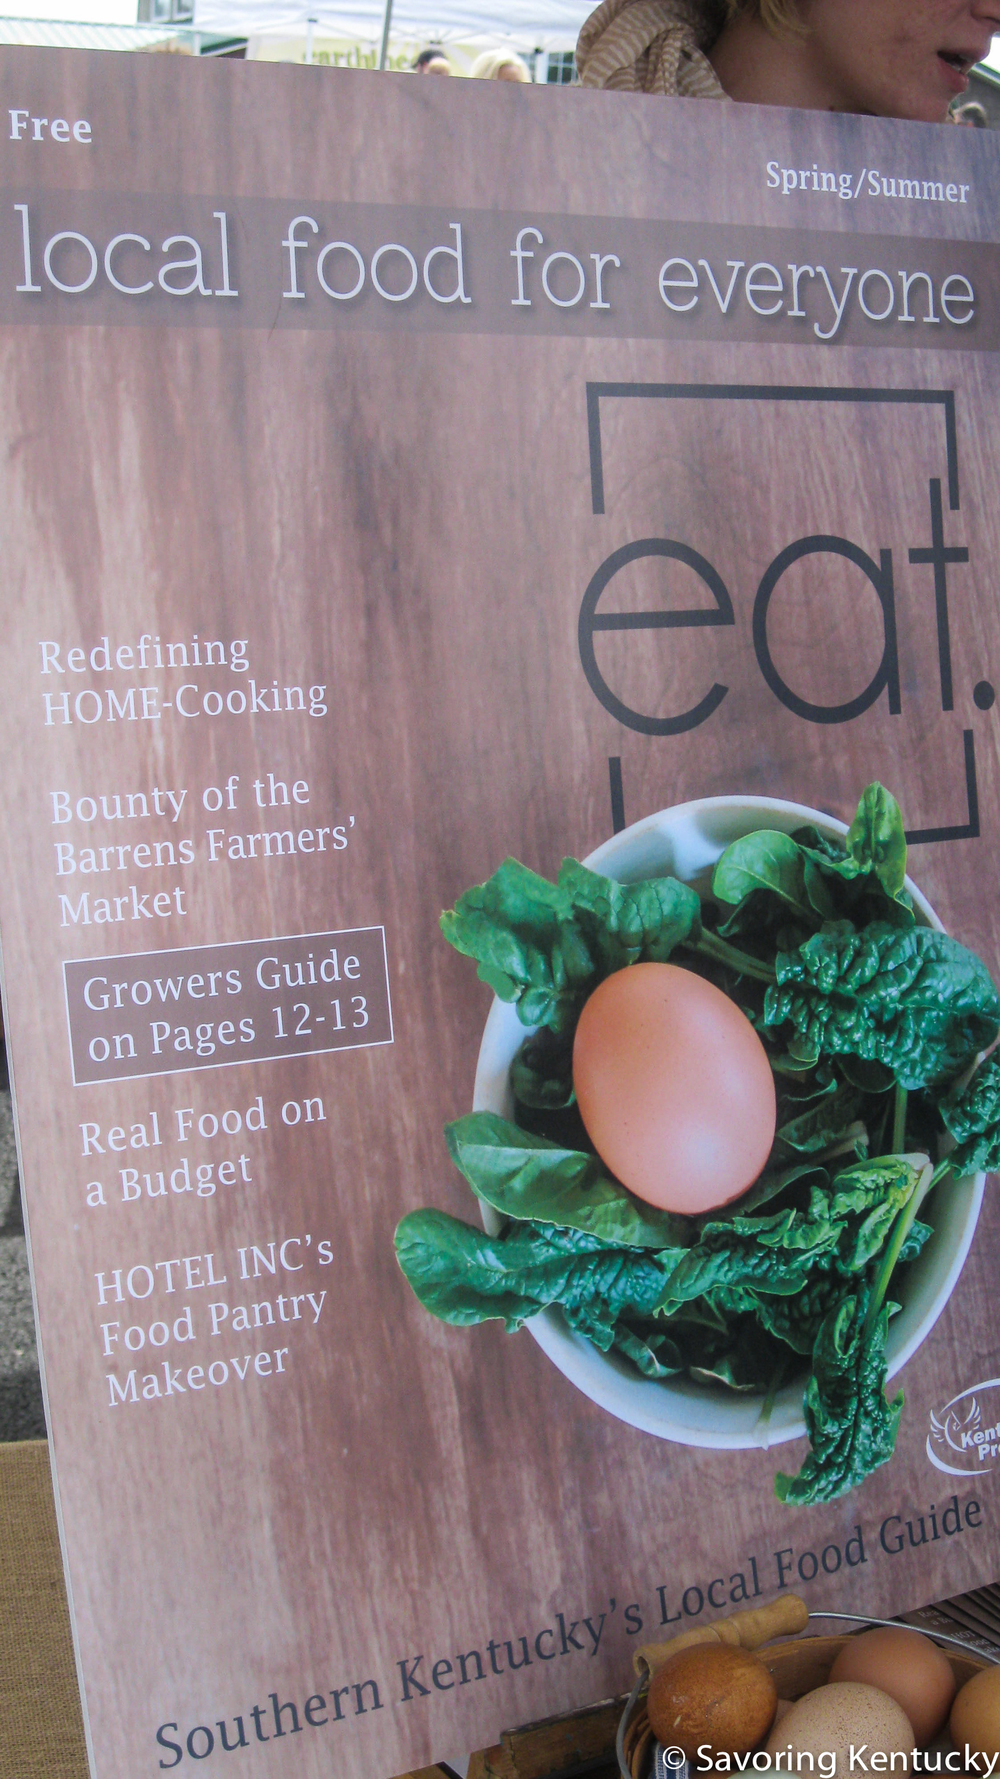 eat, a publication of ... Local Food for Everyone?